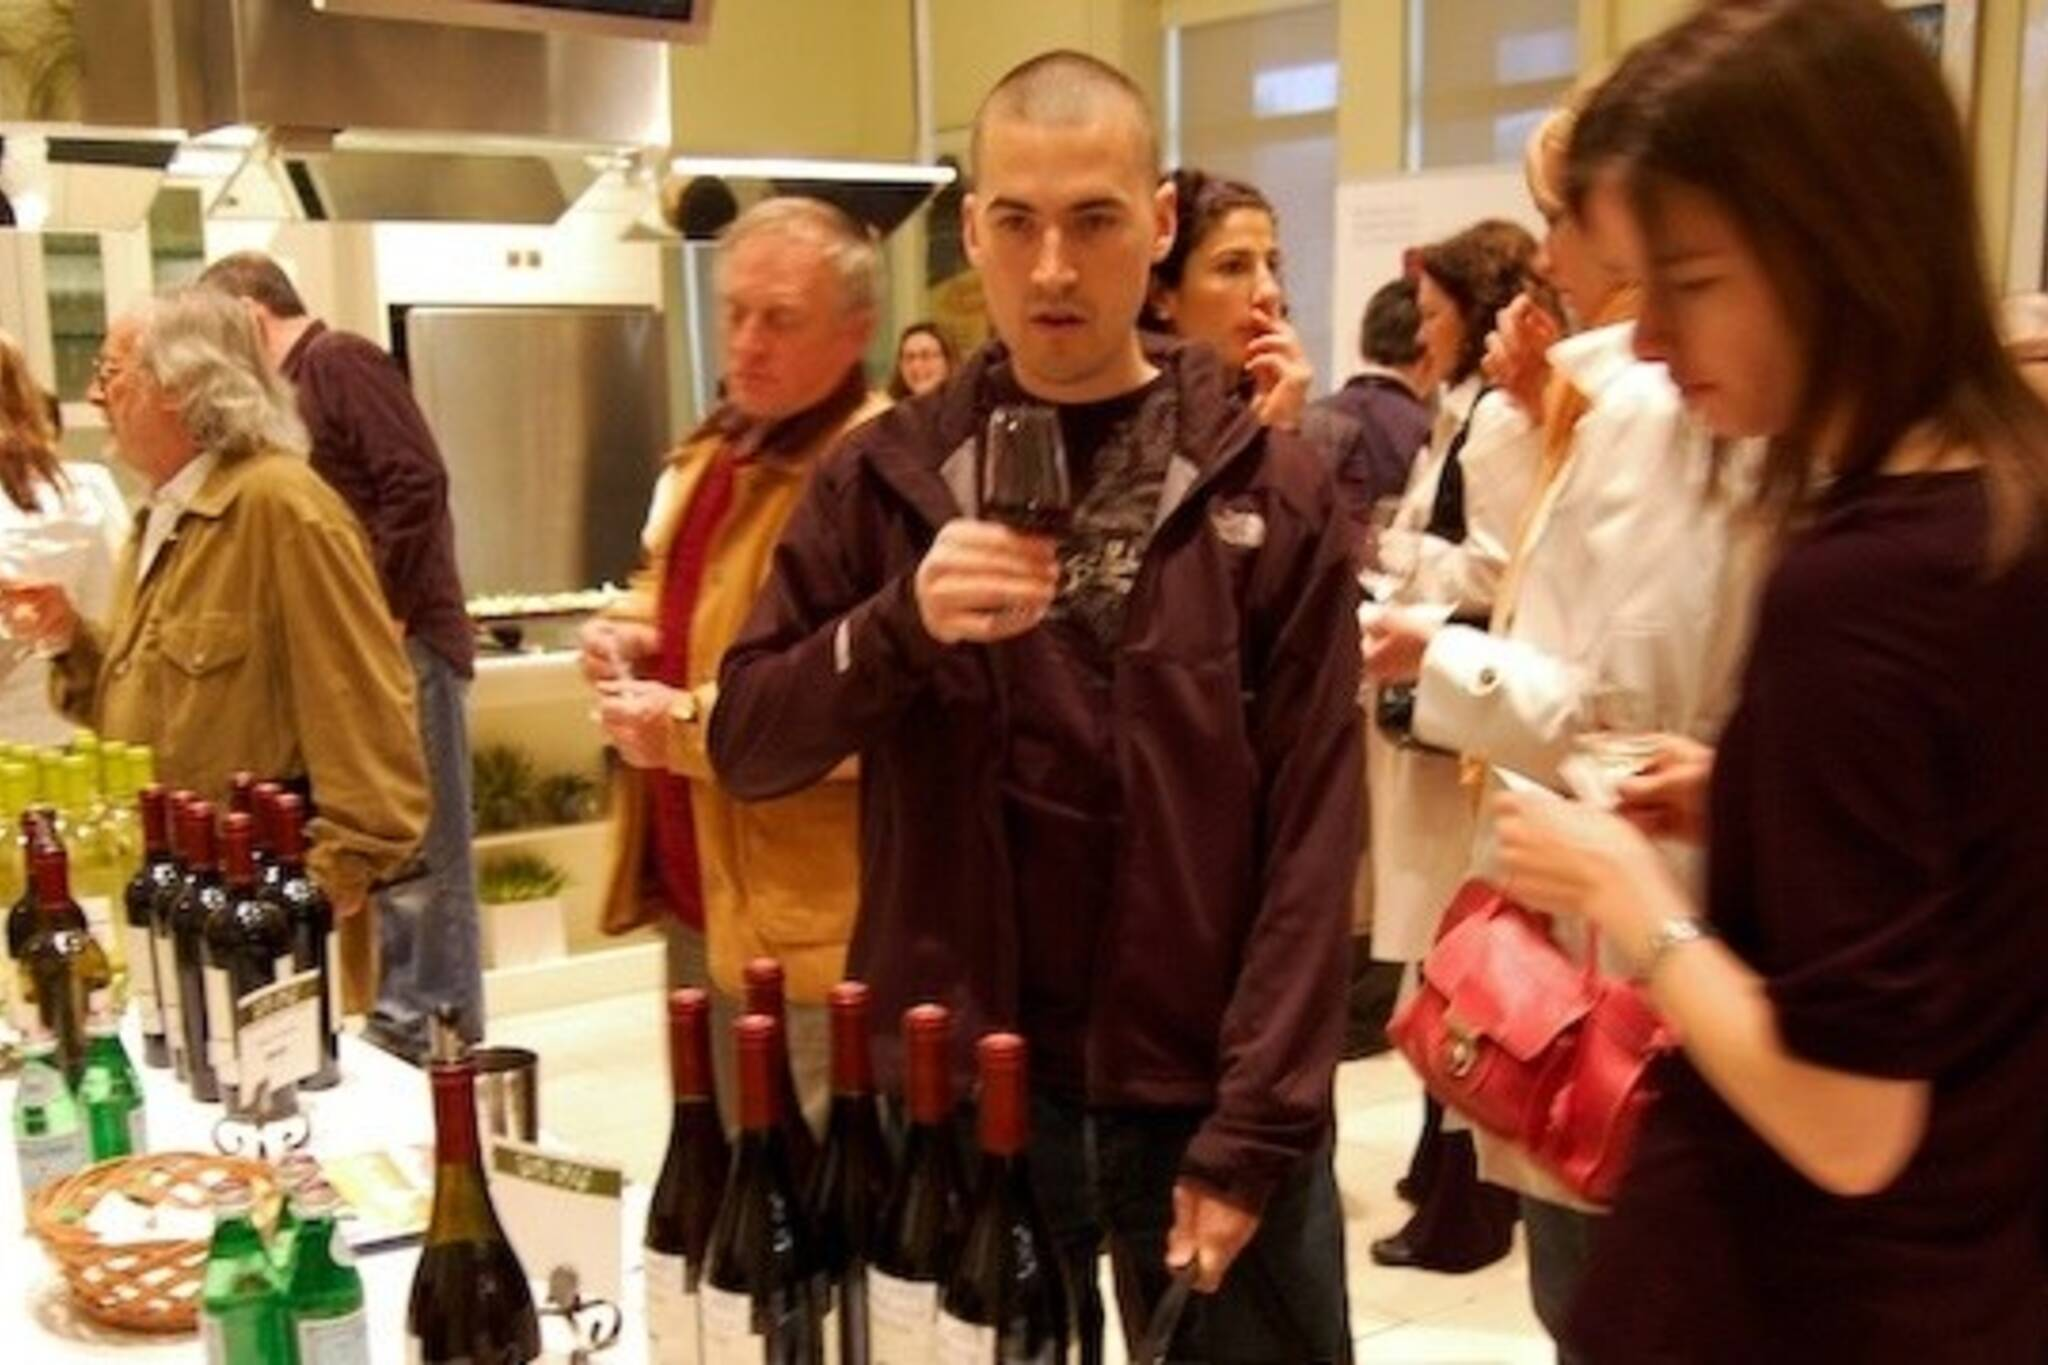 The crowd at the Sante wine sampling